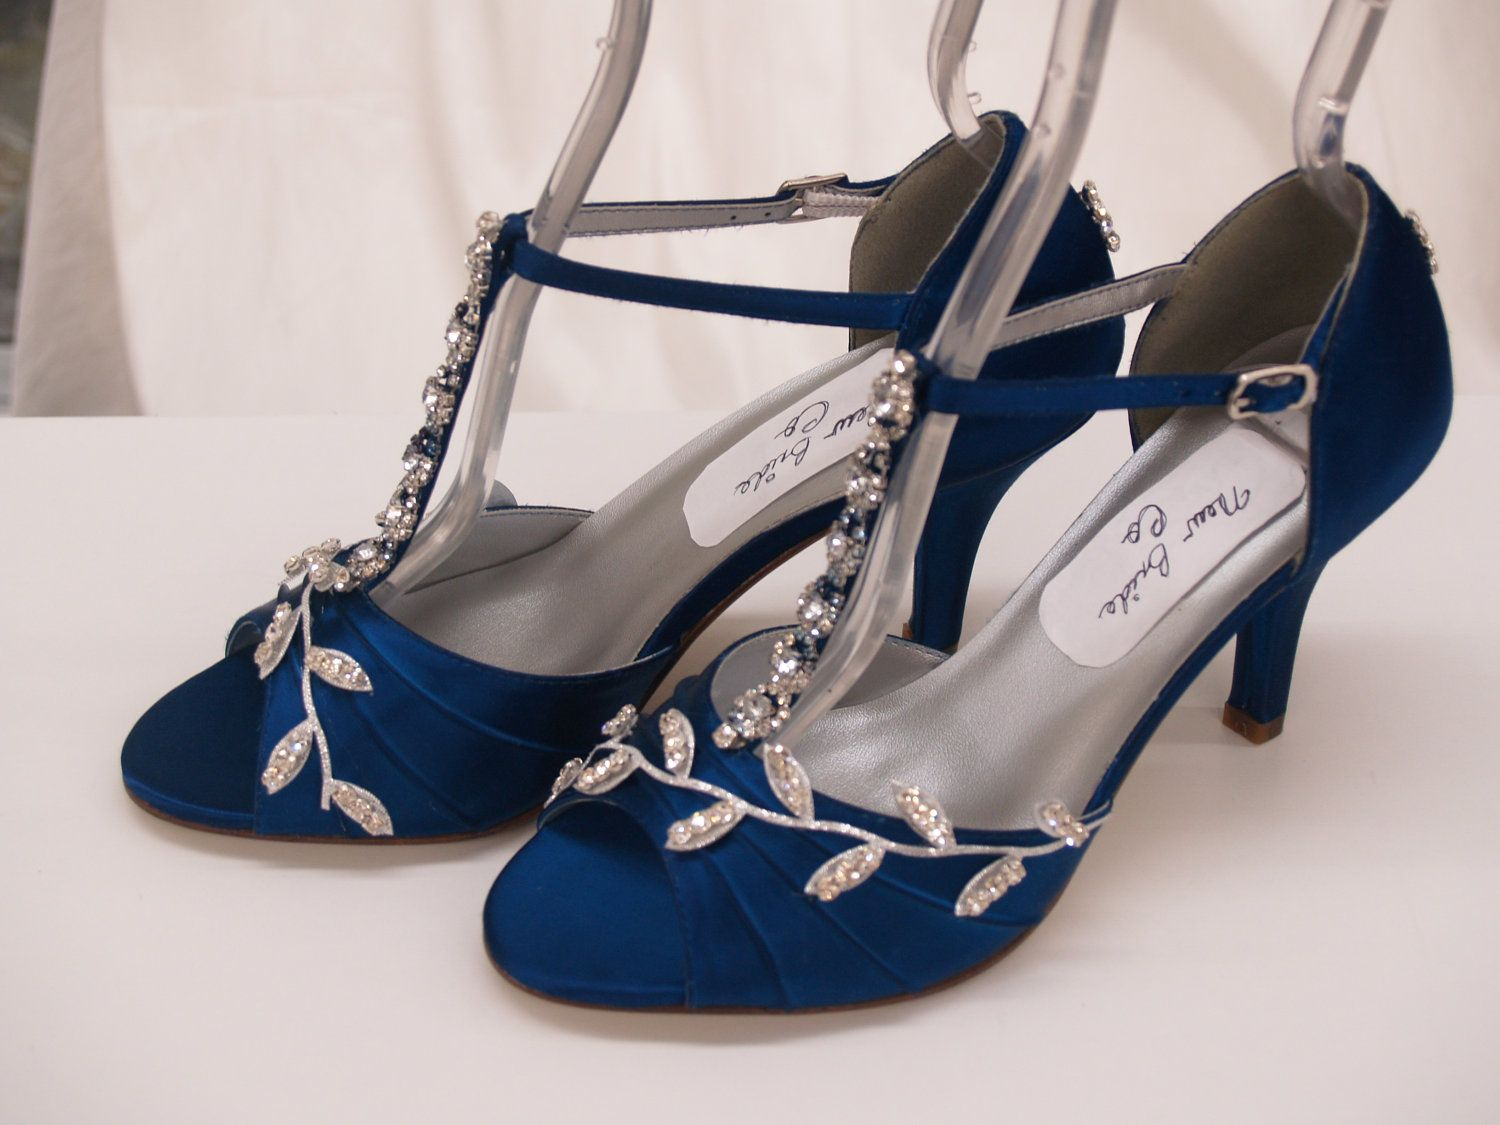 Blue Wedding Shoes Royal With Silver Swarovski Crystals 14900 Via Etsy